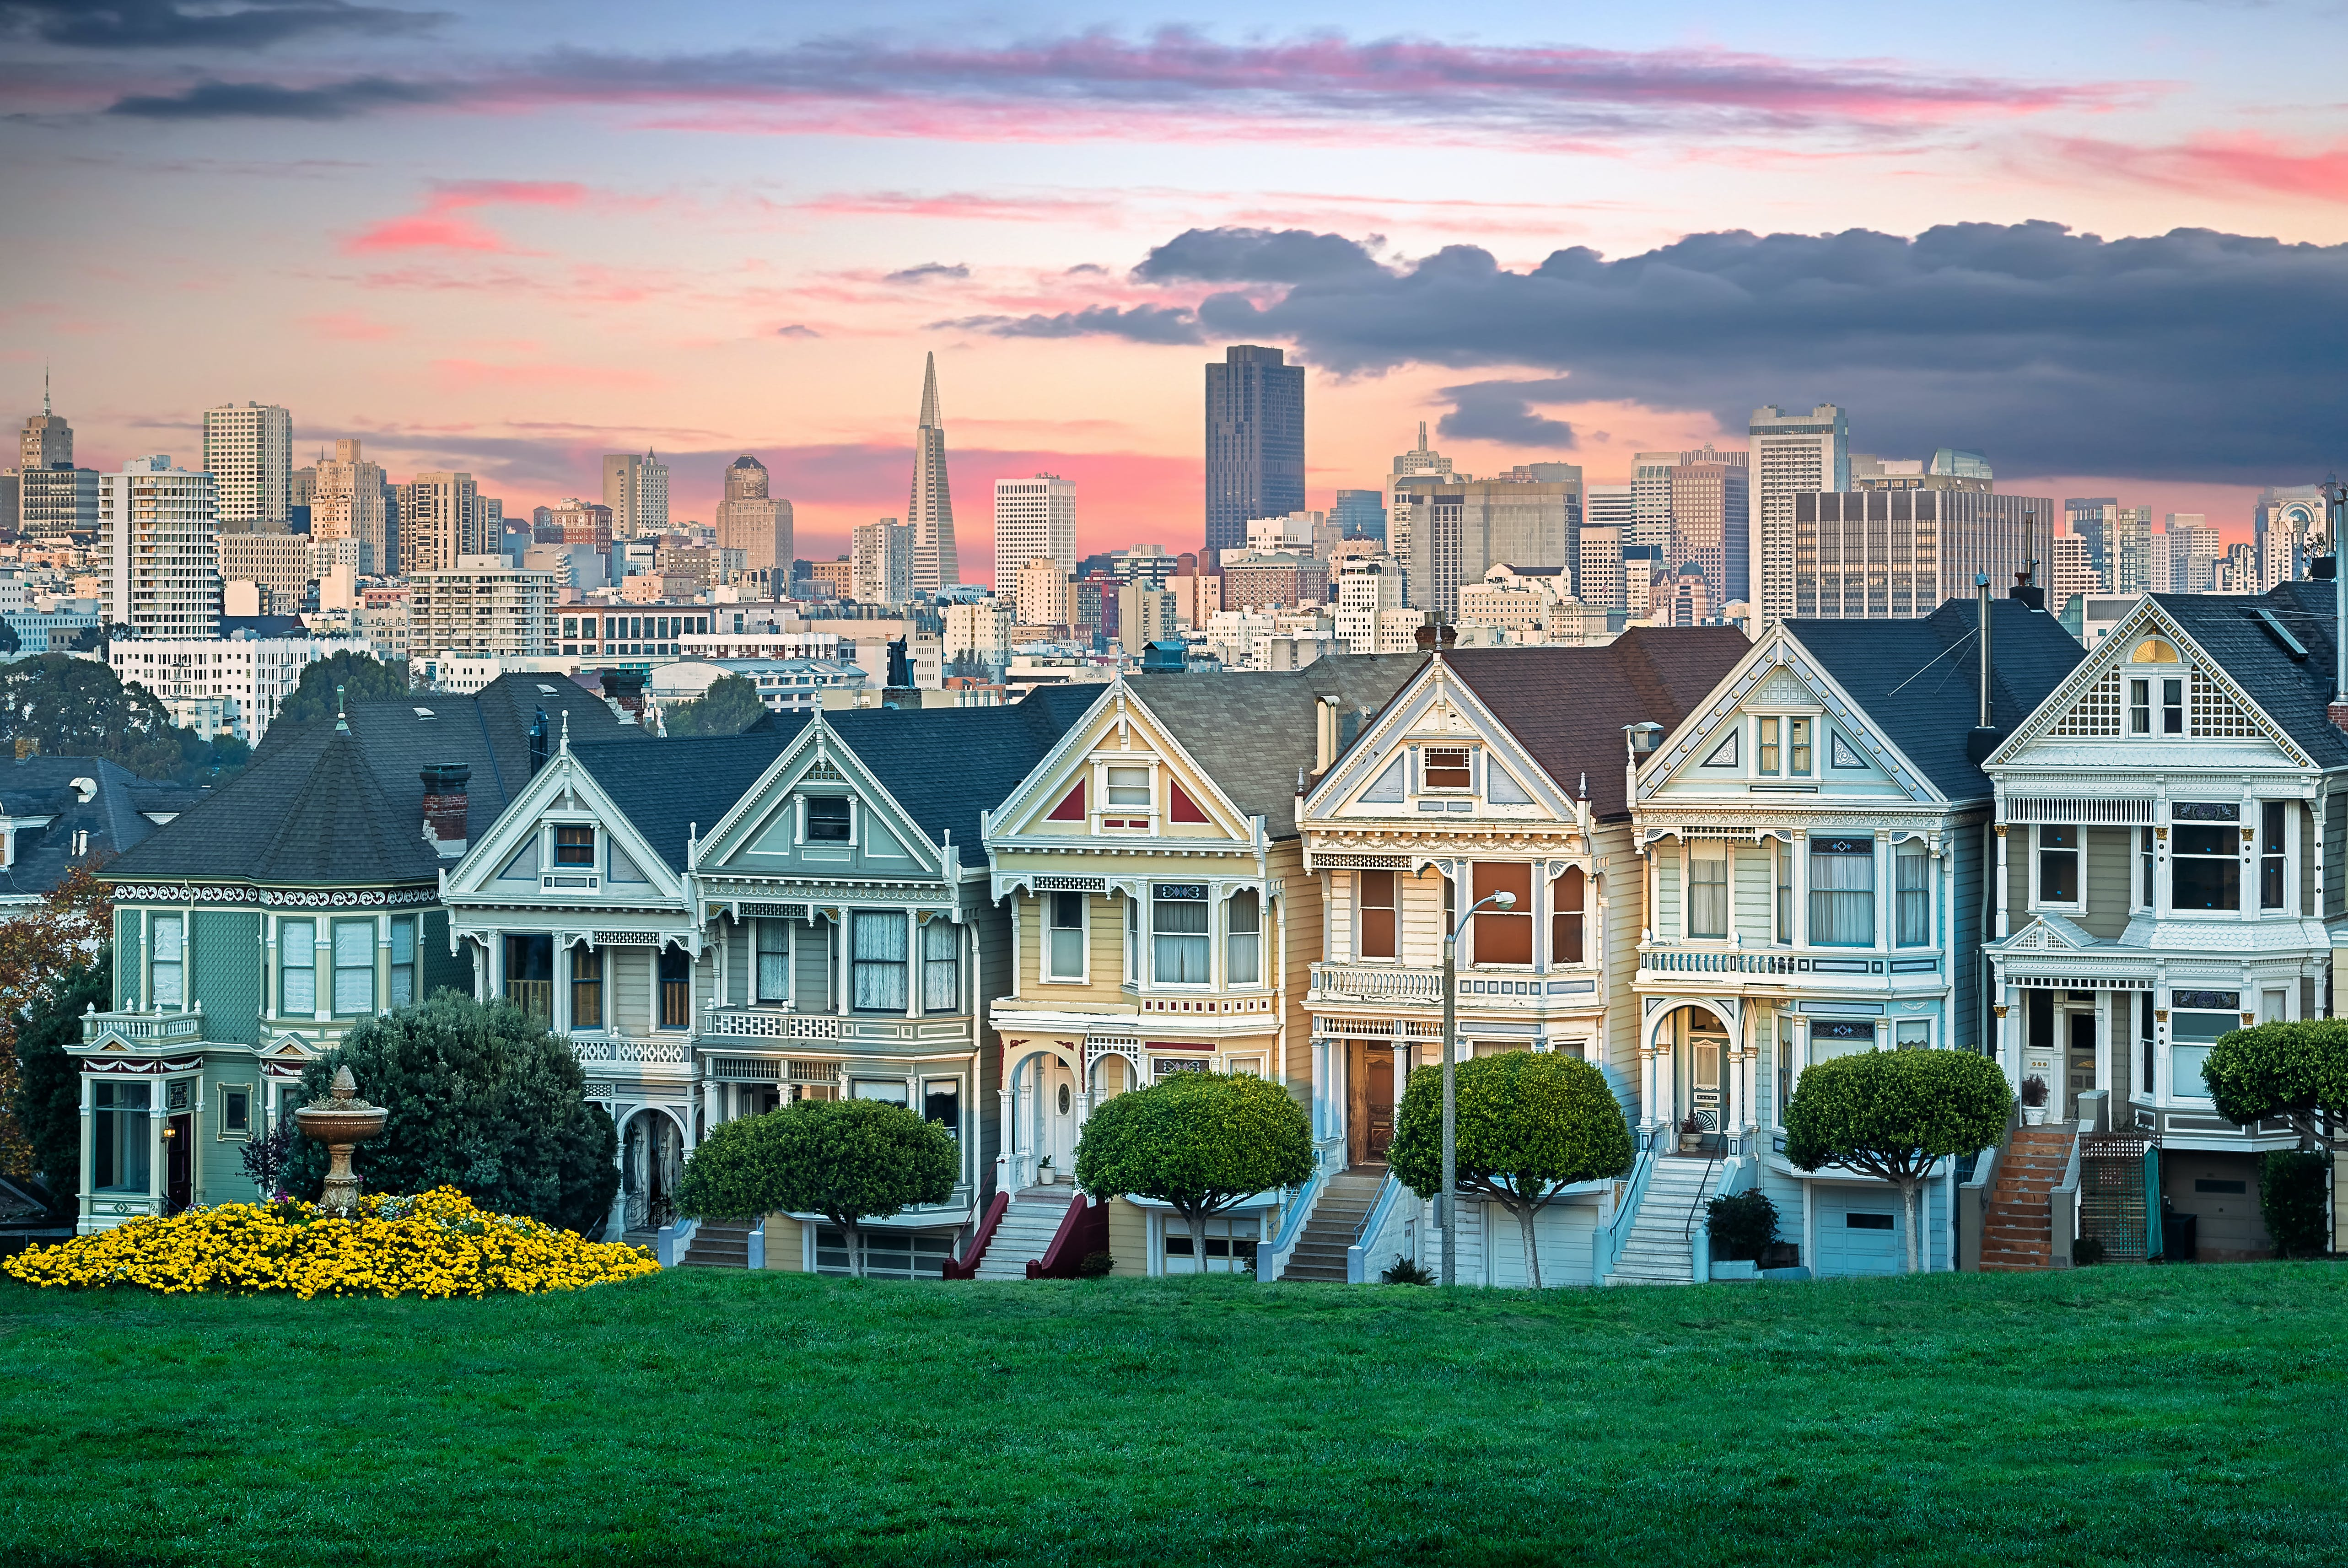 painted ladies san francisco beautiful places